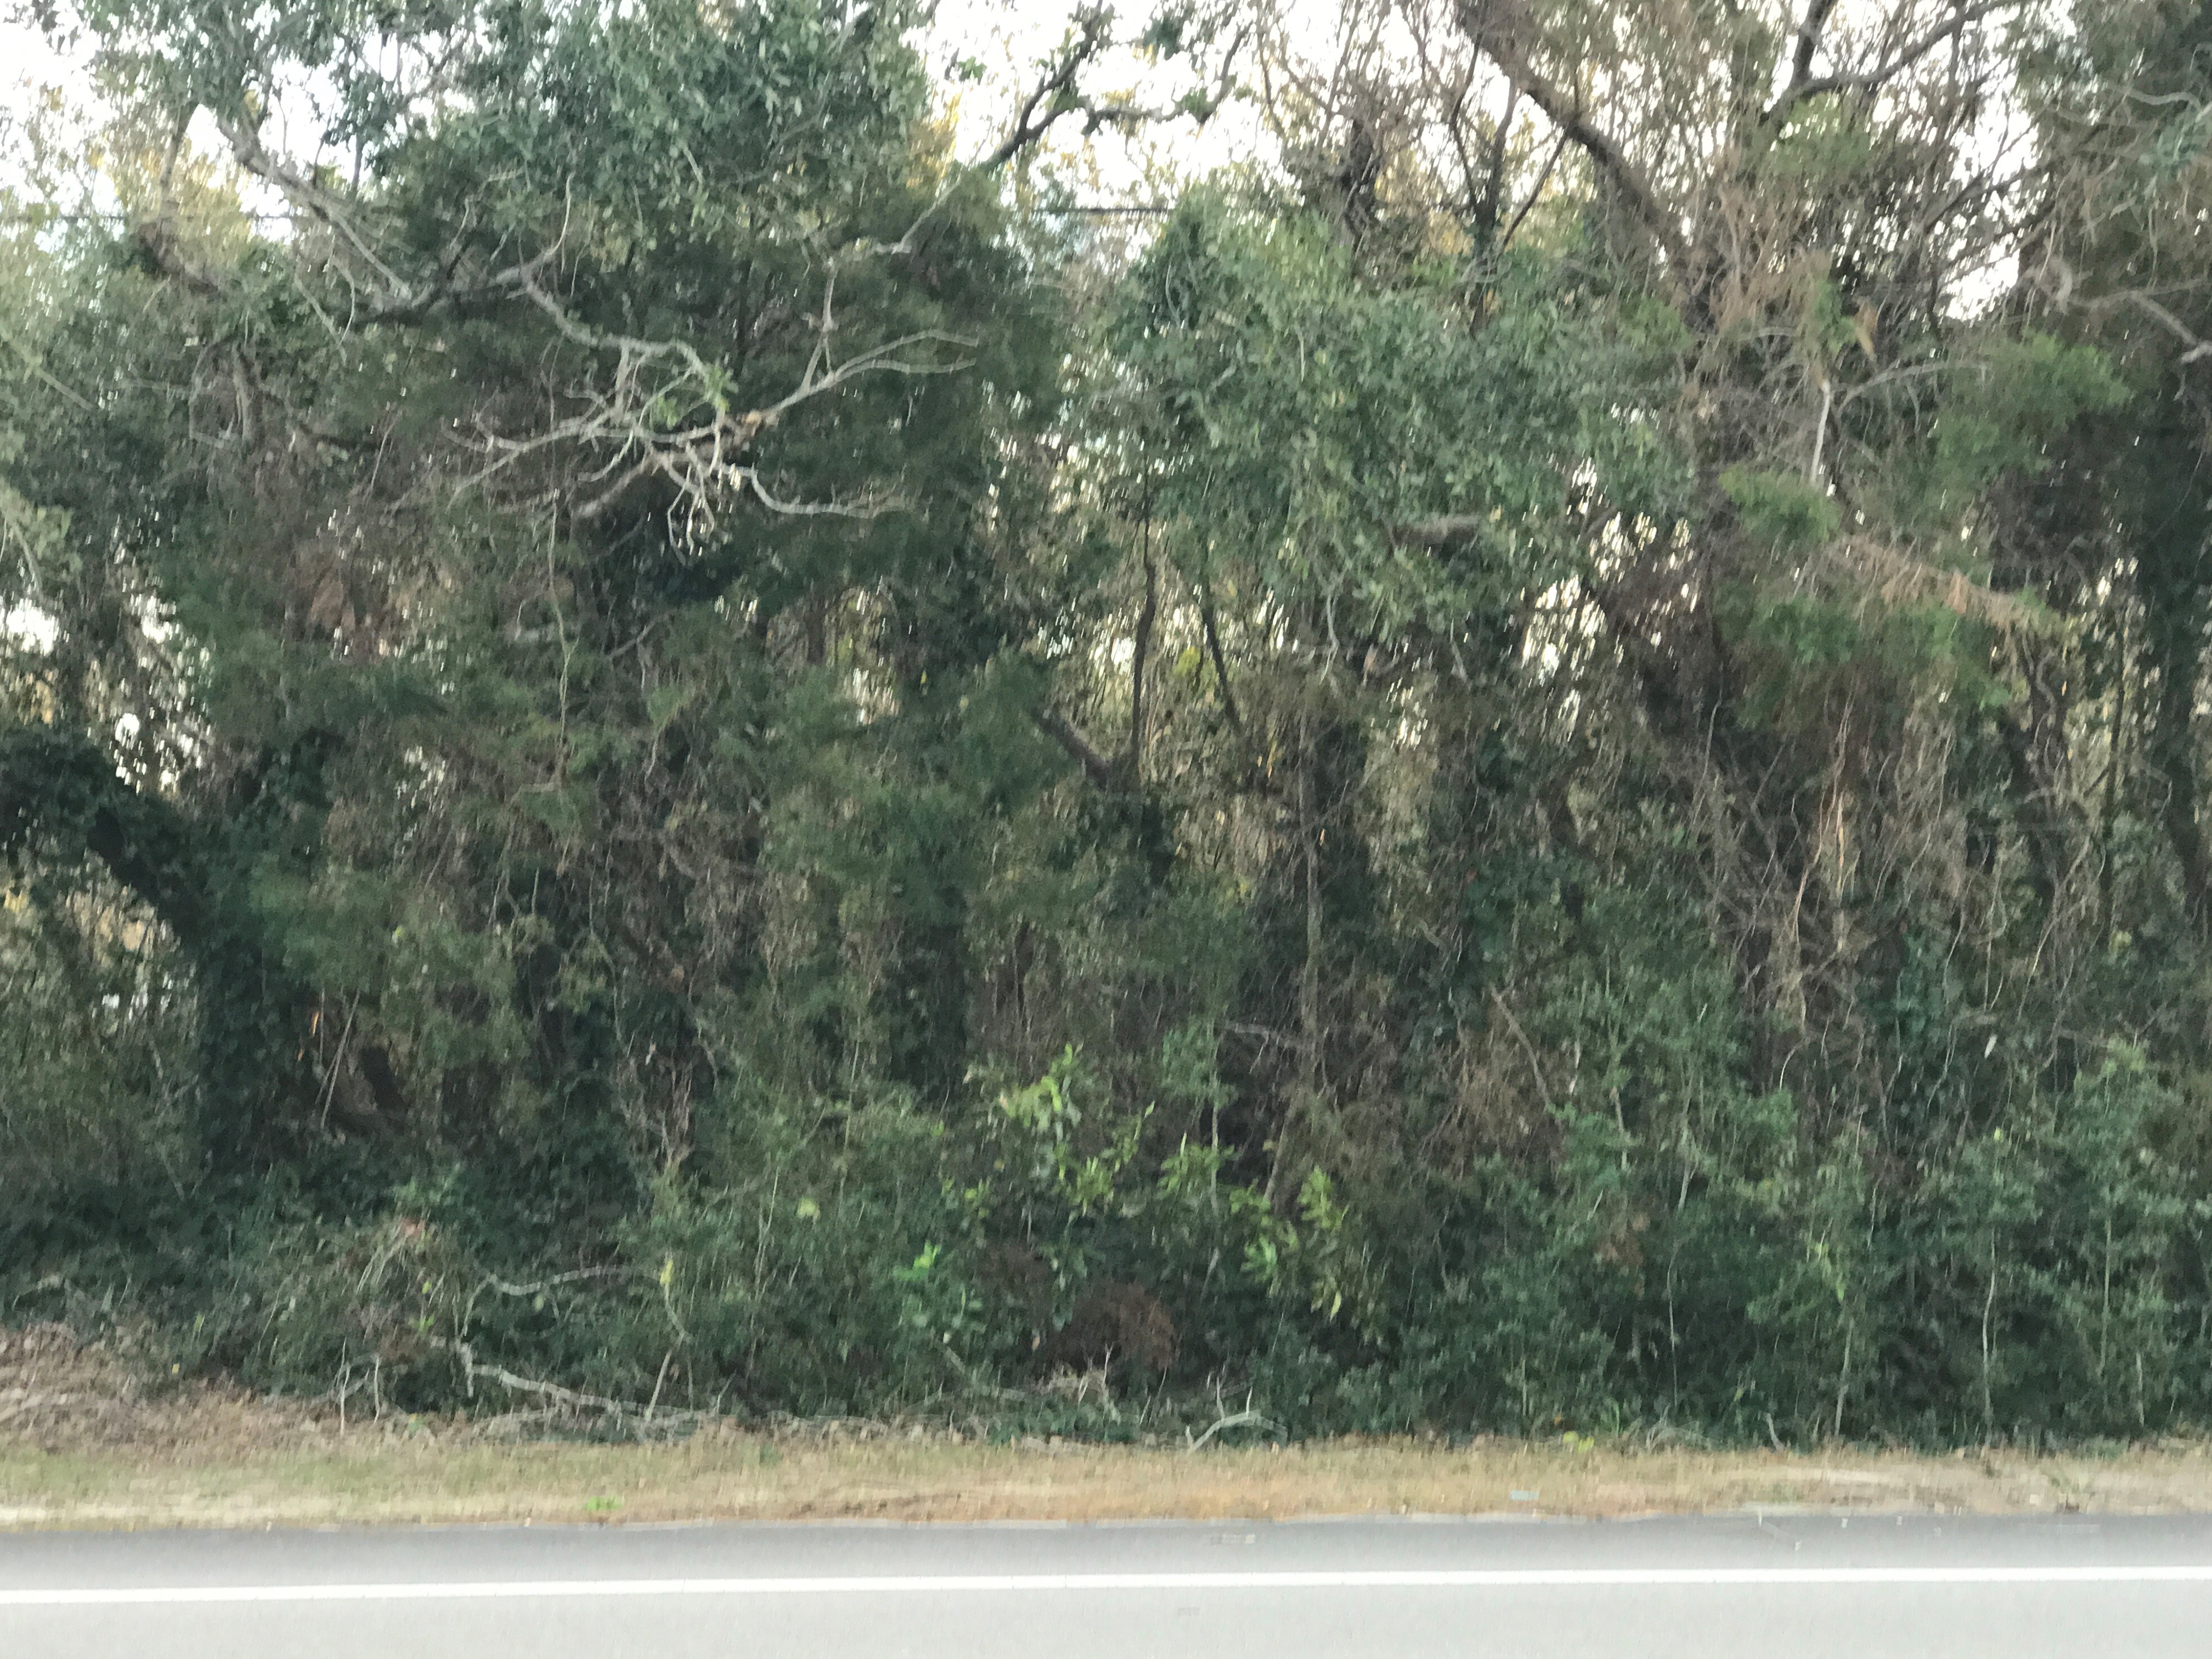 Land kaufen in 139 Salter Path Rd., Pine Knoll Shores, NC ,28512